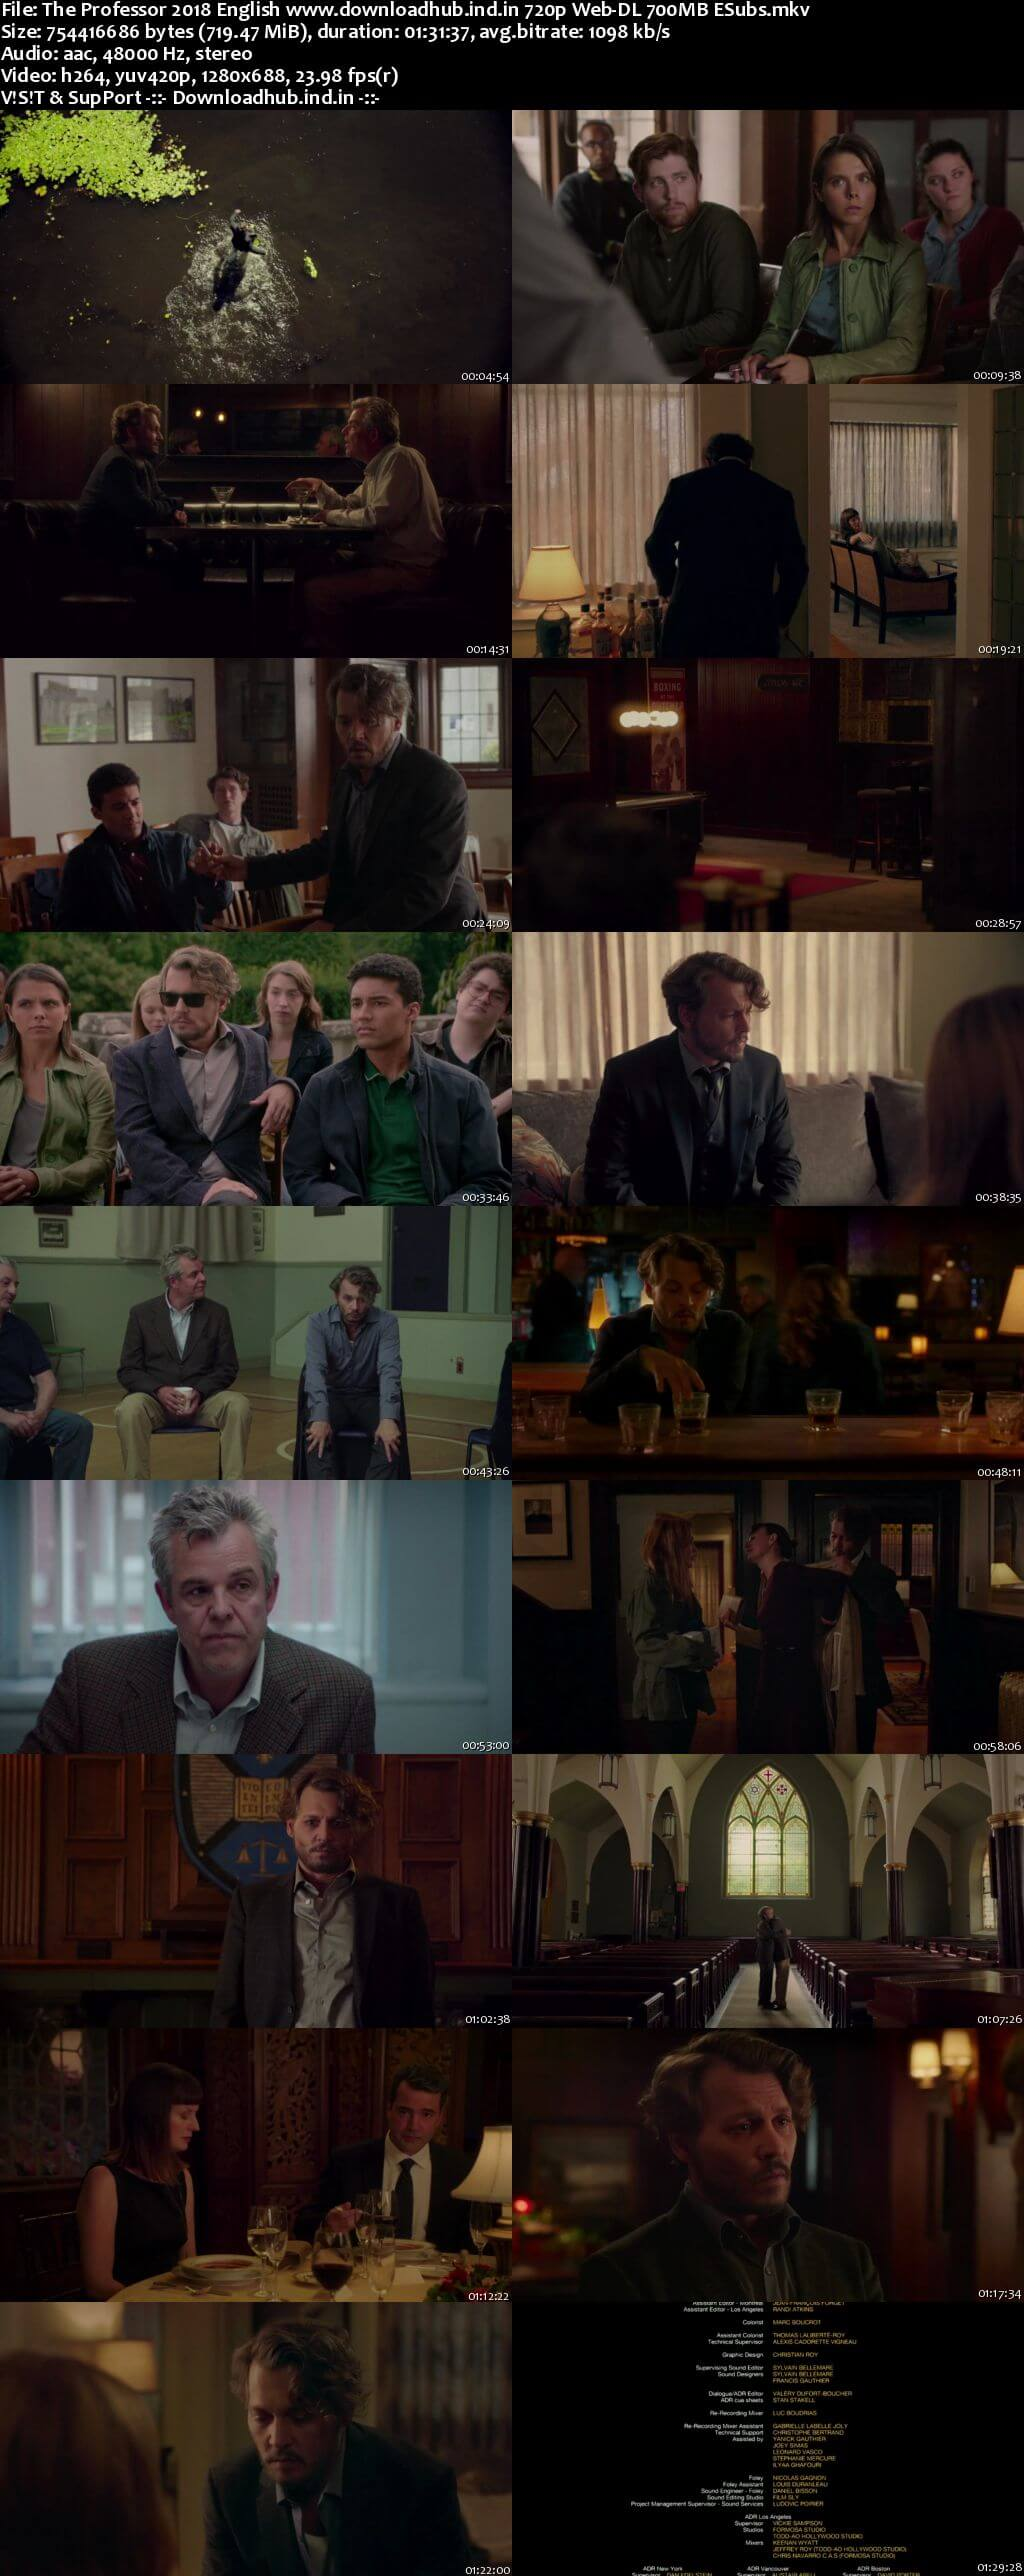 The Professor 2018 English 720p Web-DL 700MB ESubs